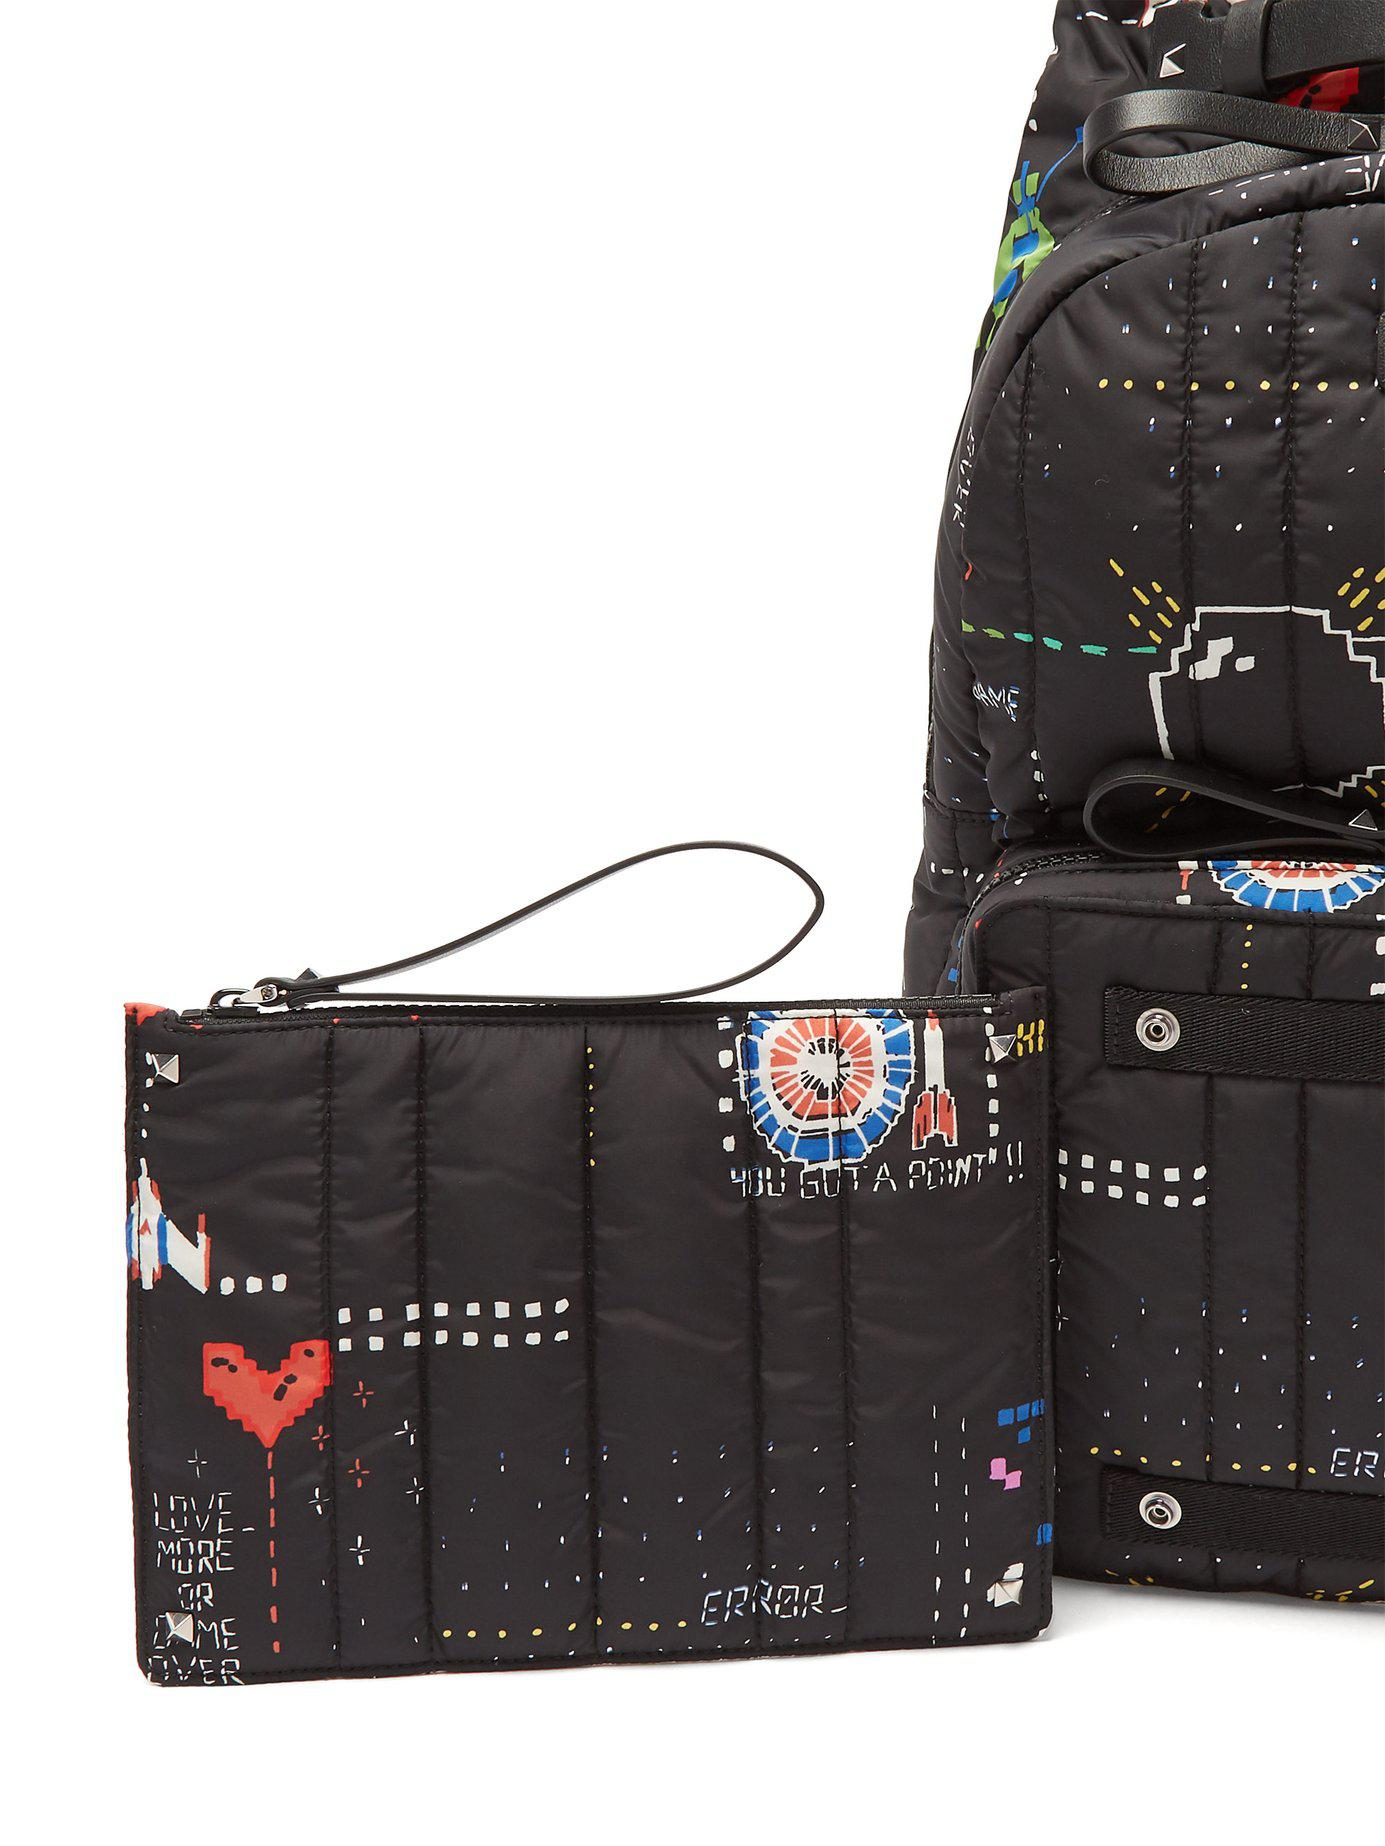 Lyst - Valentino Arcade Print Backpack in Black for Men 3caebc844dcfe